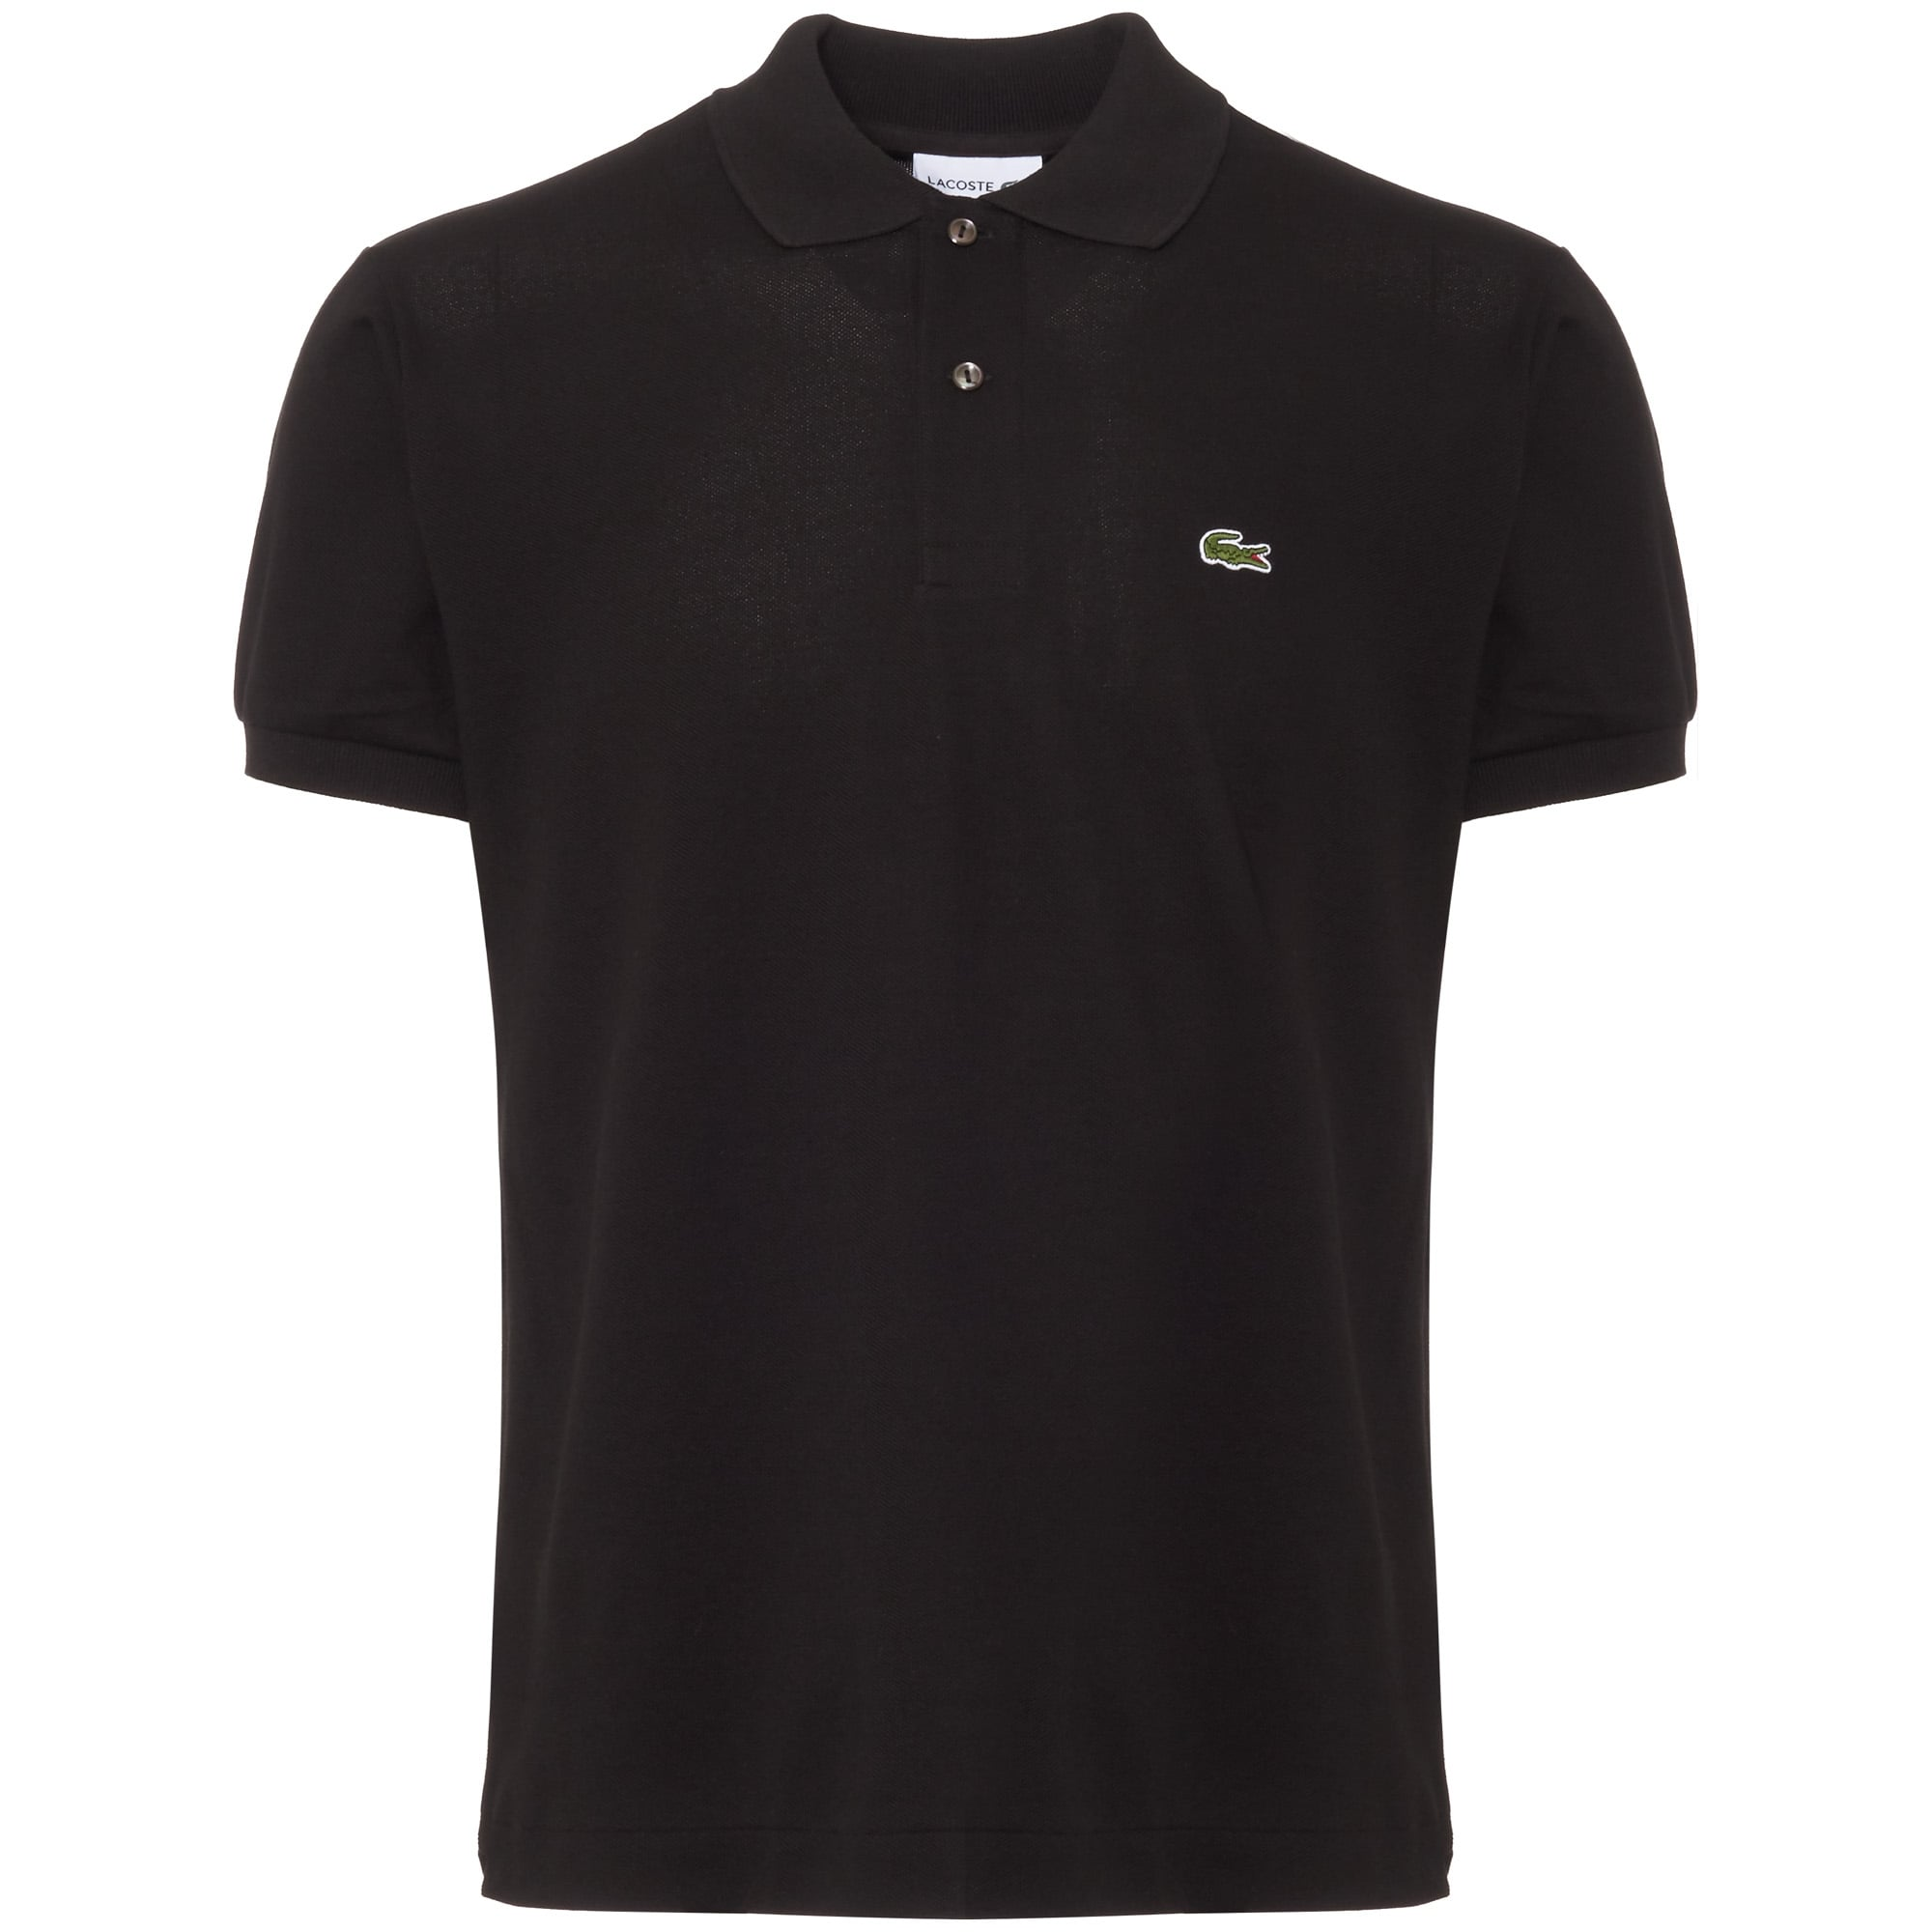 Lacoste polo shirt lacoste classic pique black polo shirt l121200031 PKEPSZX